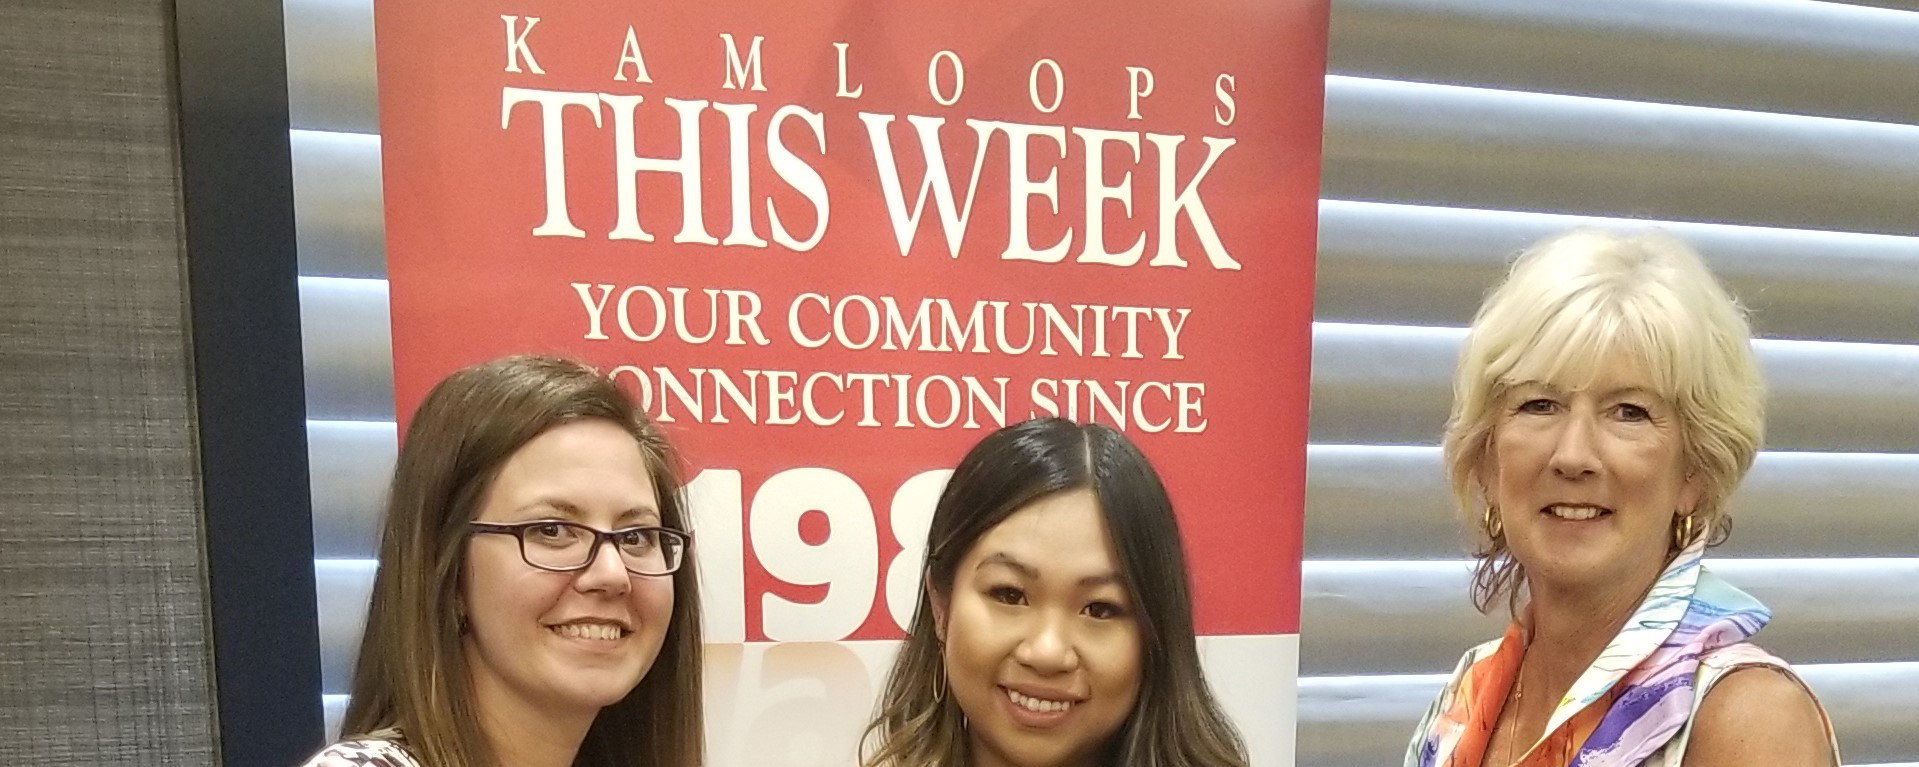 Excel Personnel Sponsors Kamloops This Week Community Leader Awards 2019